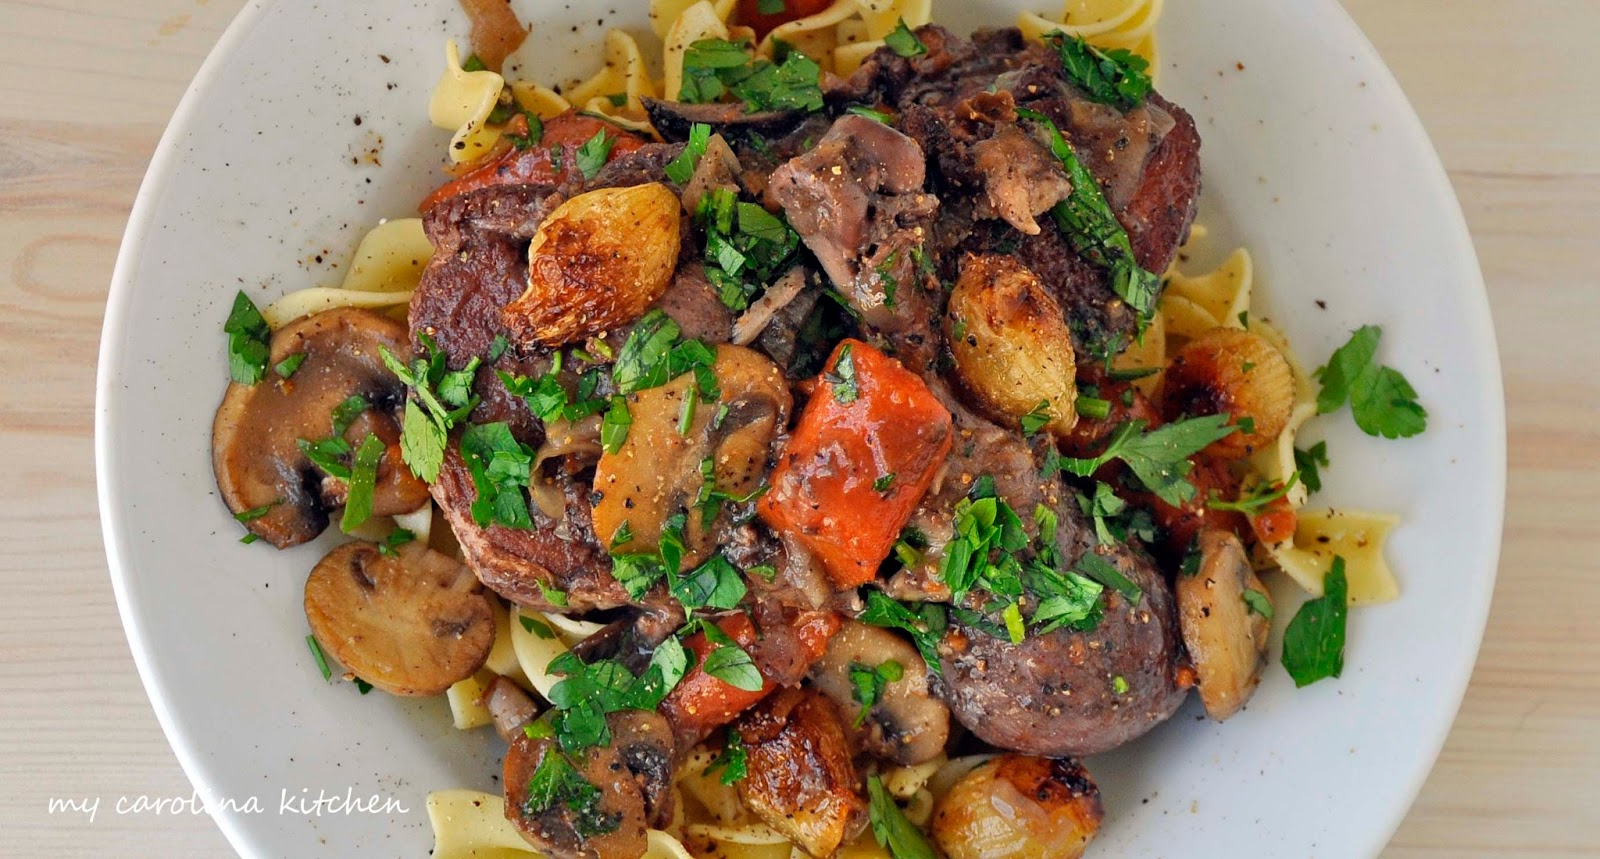 892d1bf78c1c94 It s true when Ina says that coq au vin is just really beef bourguignon  with chicken. The two recipes are almost identical